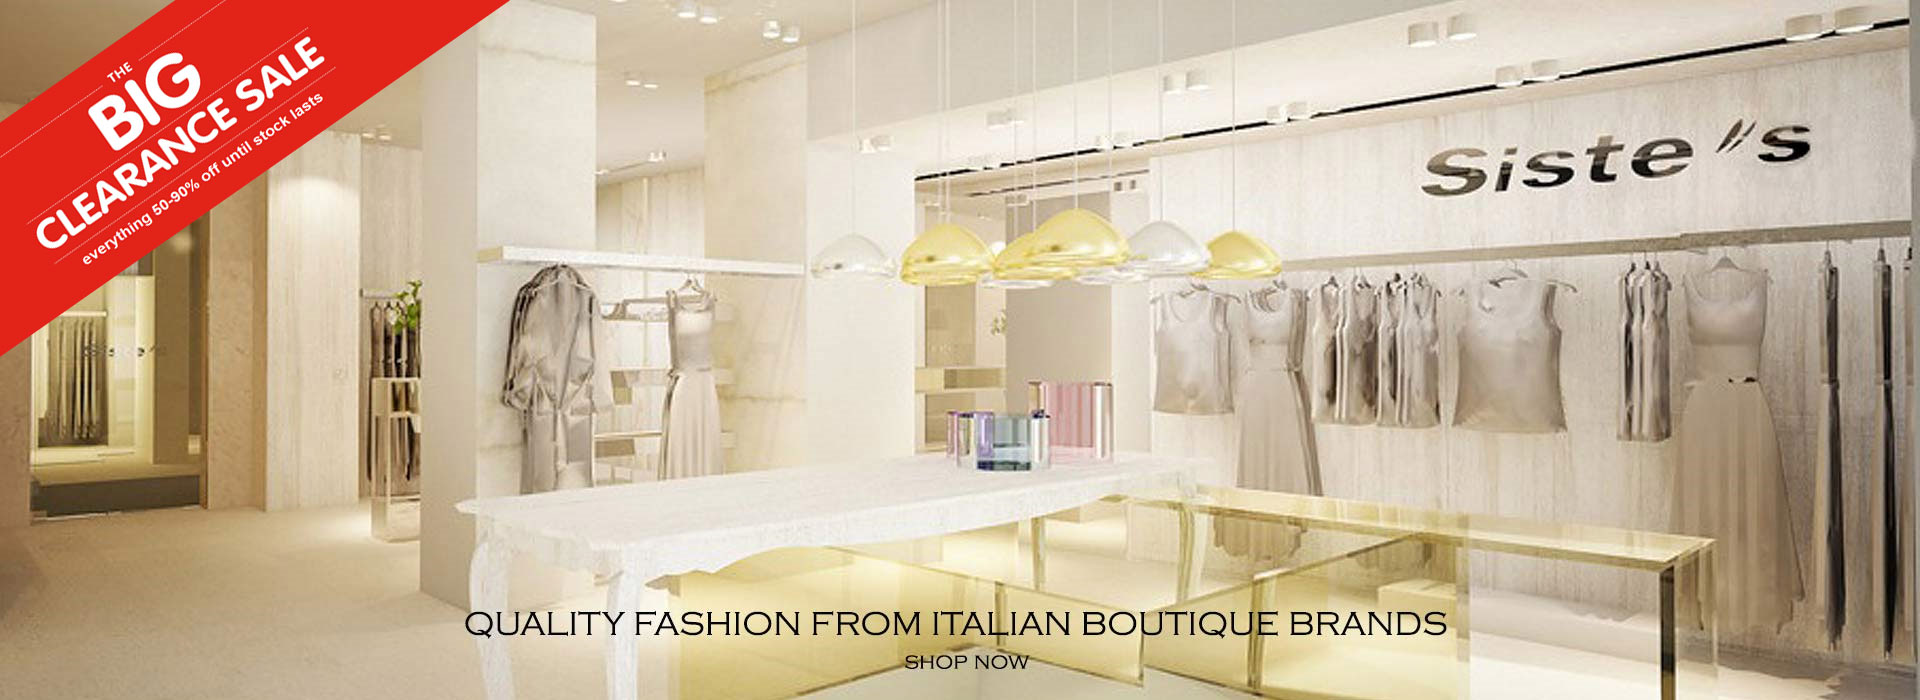 Milano boutique